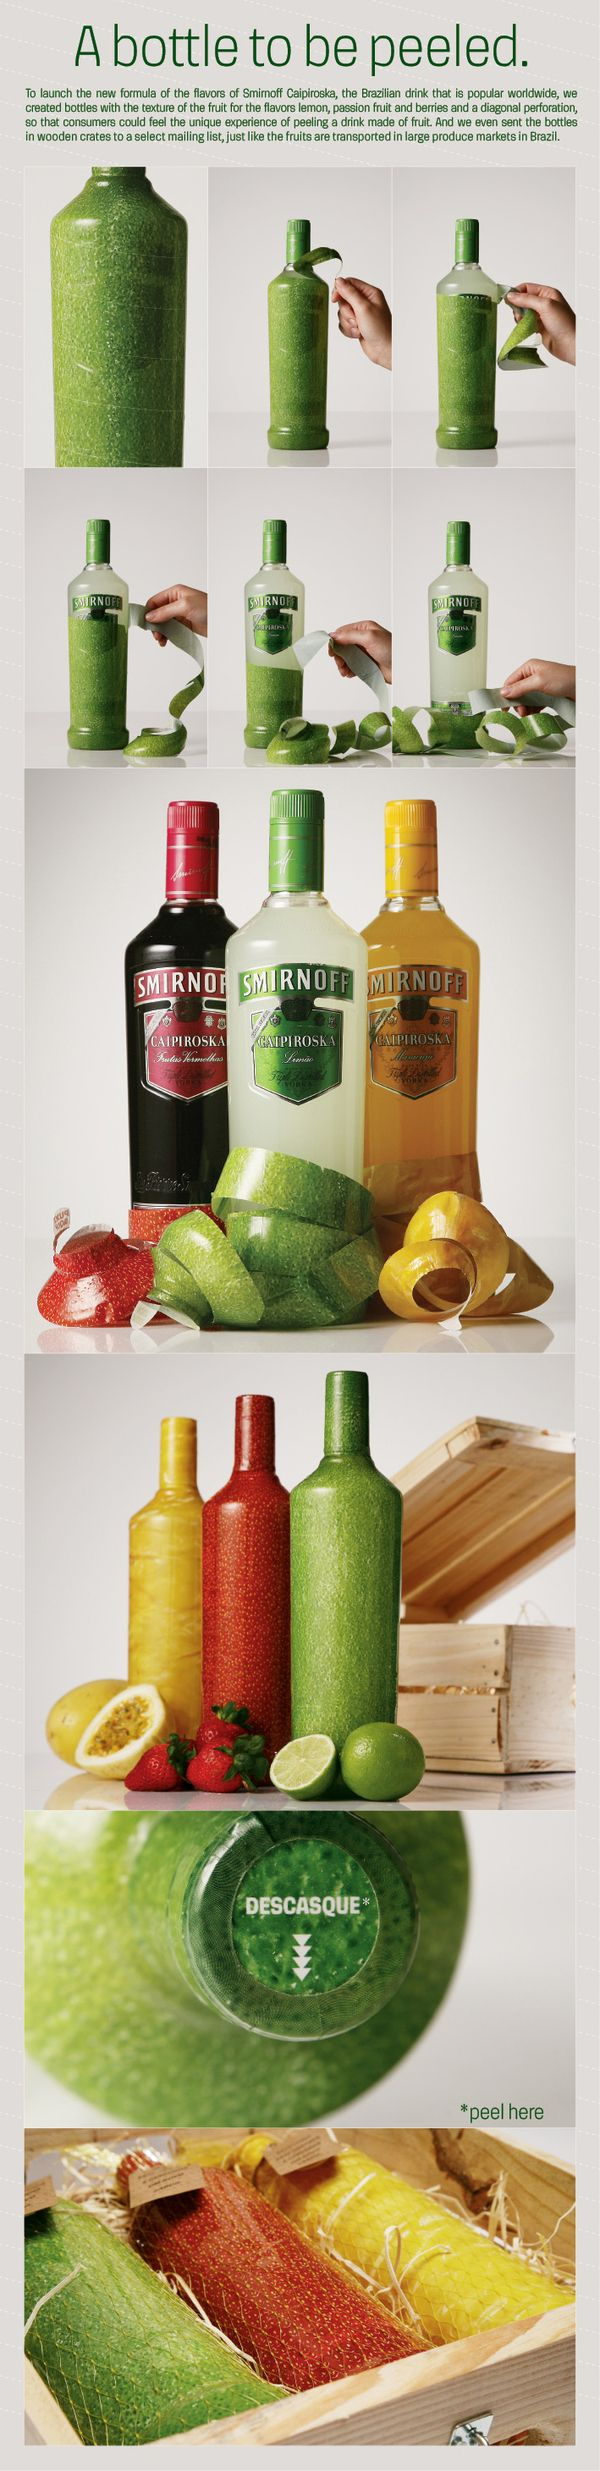 Fruit peel label for vodka bottles #packaging